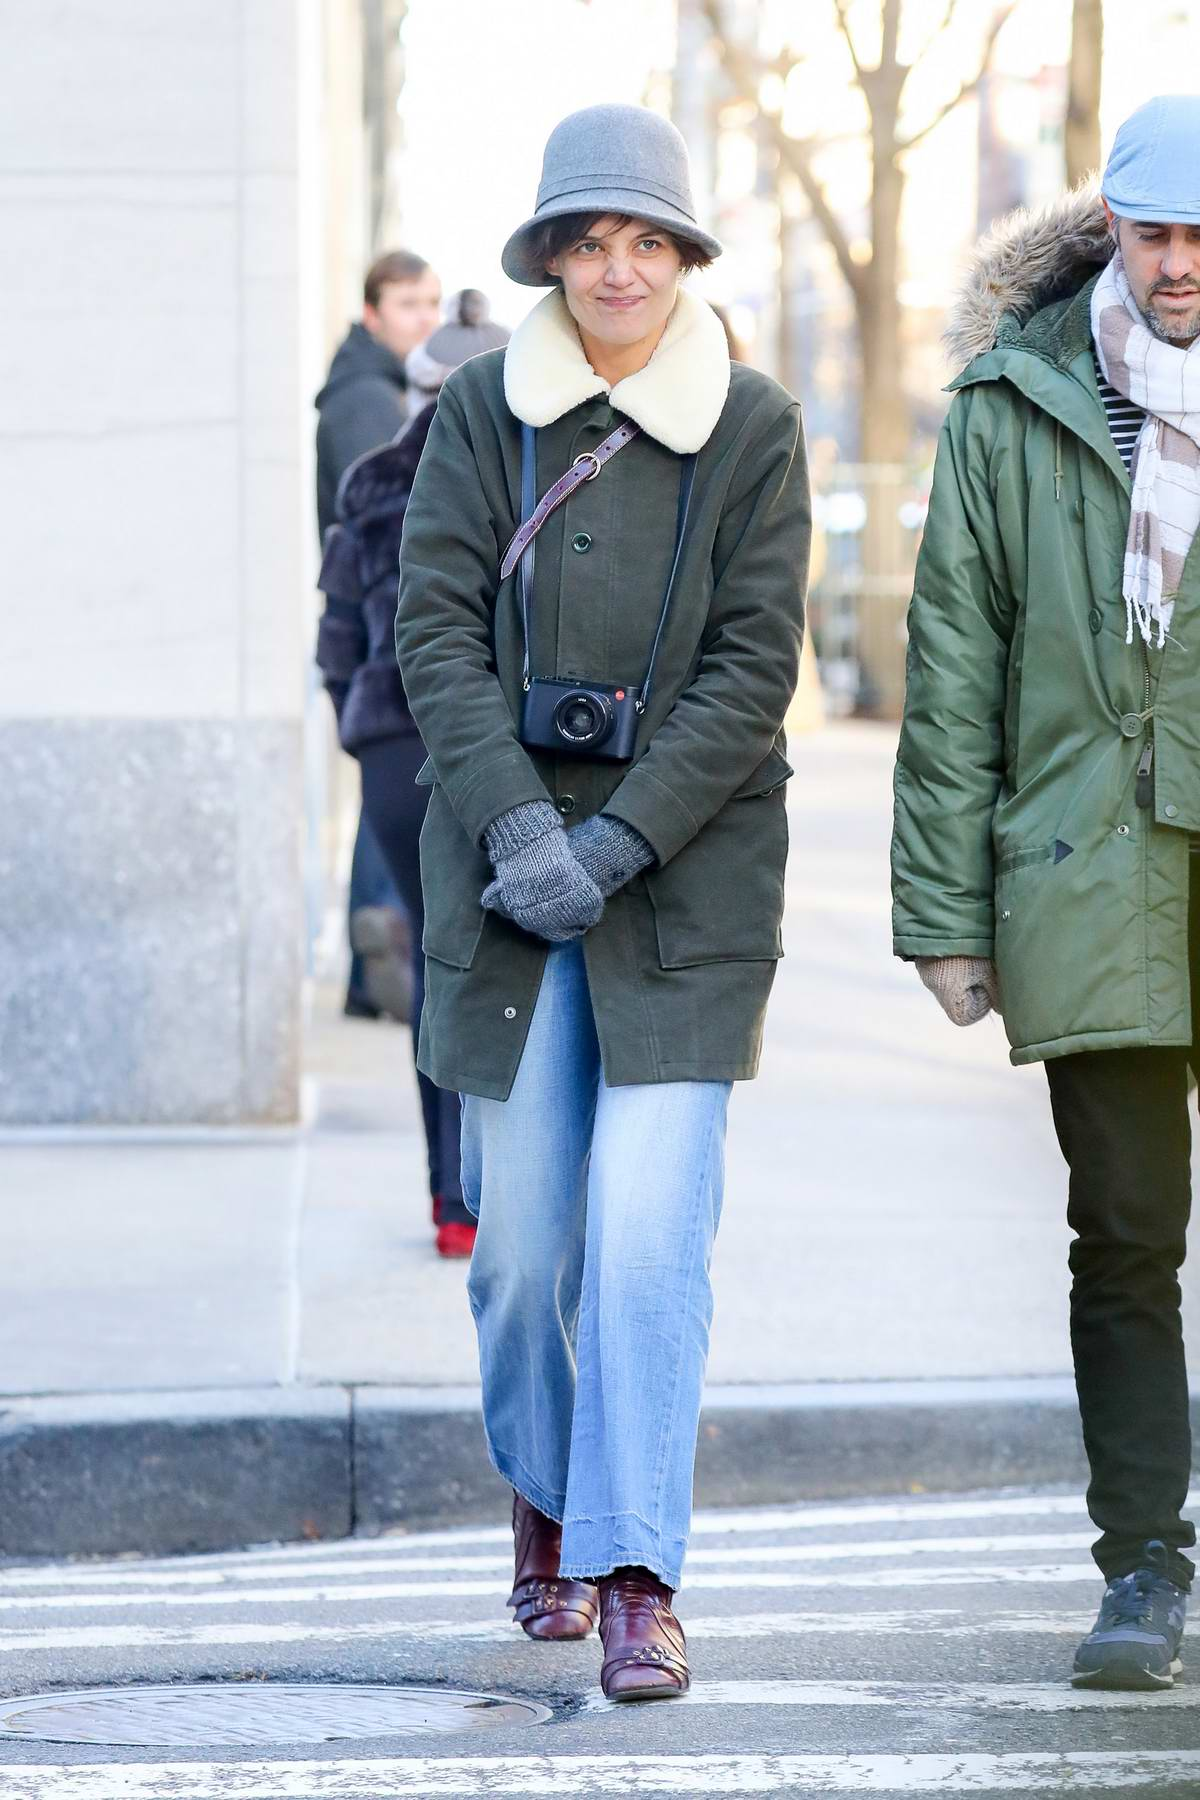 Katie Holmes out to see the show 'Michelangelo: Divine Draftsman and Designer' at the Metropolitan Museum of Art in New York City